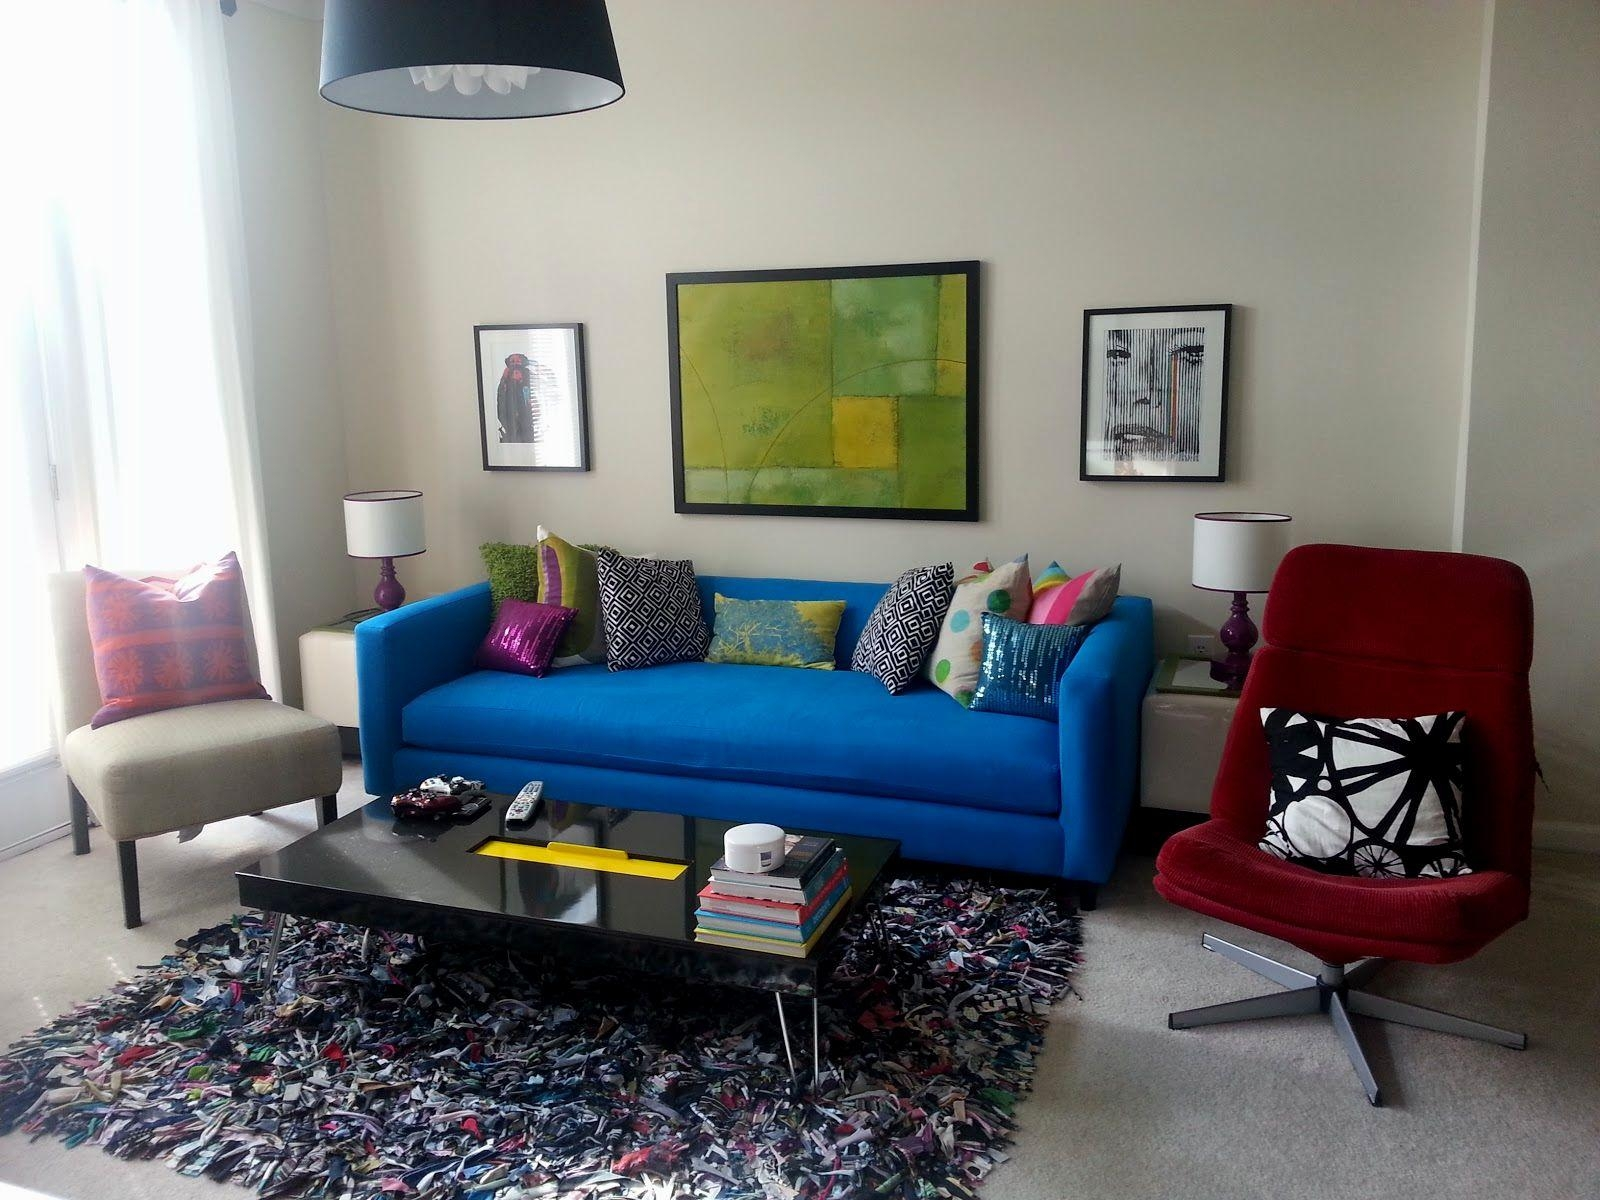 Interesting Cb2 Piazza Sofa 96 For Your Small Room Home Remodel Intended For Cb2 Piazza Sofas (Image 13 of 20)